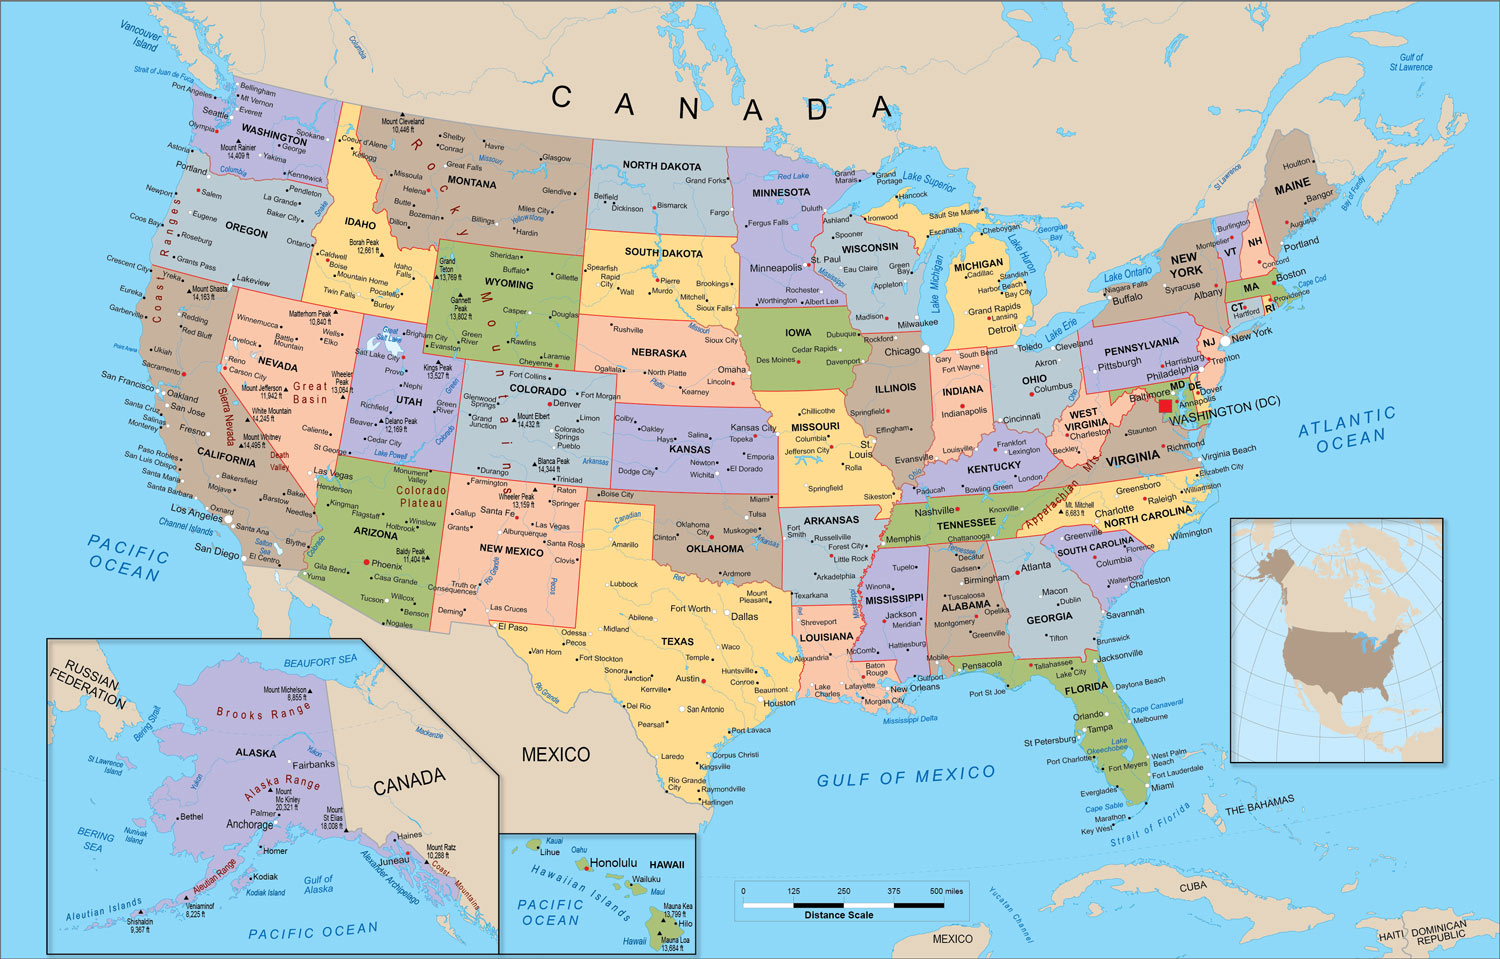 Free download United States Political Map Wall Mural up to 166 x 106 on map of the united states, demographic map of united states, food map of united states, map of east coast united states, political us map, blank map of united states, road map of united states, high resolution map of united states, political features of united states, political parties united states map, missouri bellwether, solid south, map of southeast united states, large map of united states, jesusland map, purple america, science map of united states, outline of map of united states, socioeconomic map of united states, view map of united states, swing state, climate map of united states, topographical map of united states, libertarian party, military map of united states, individual map of united states,